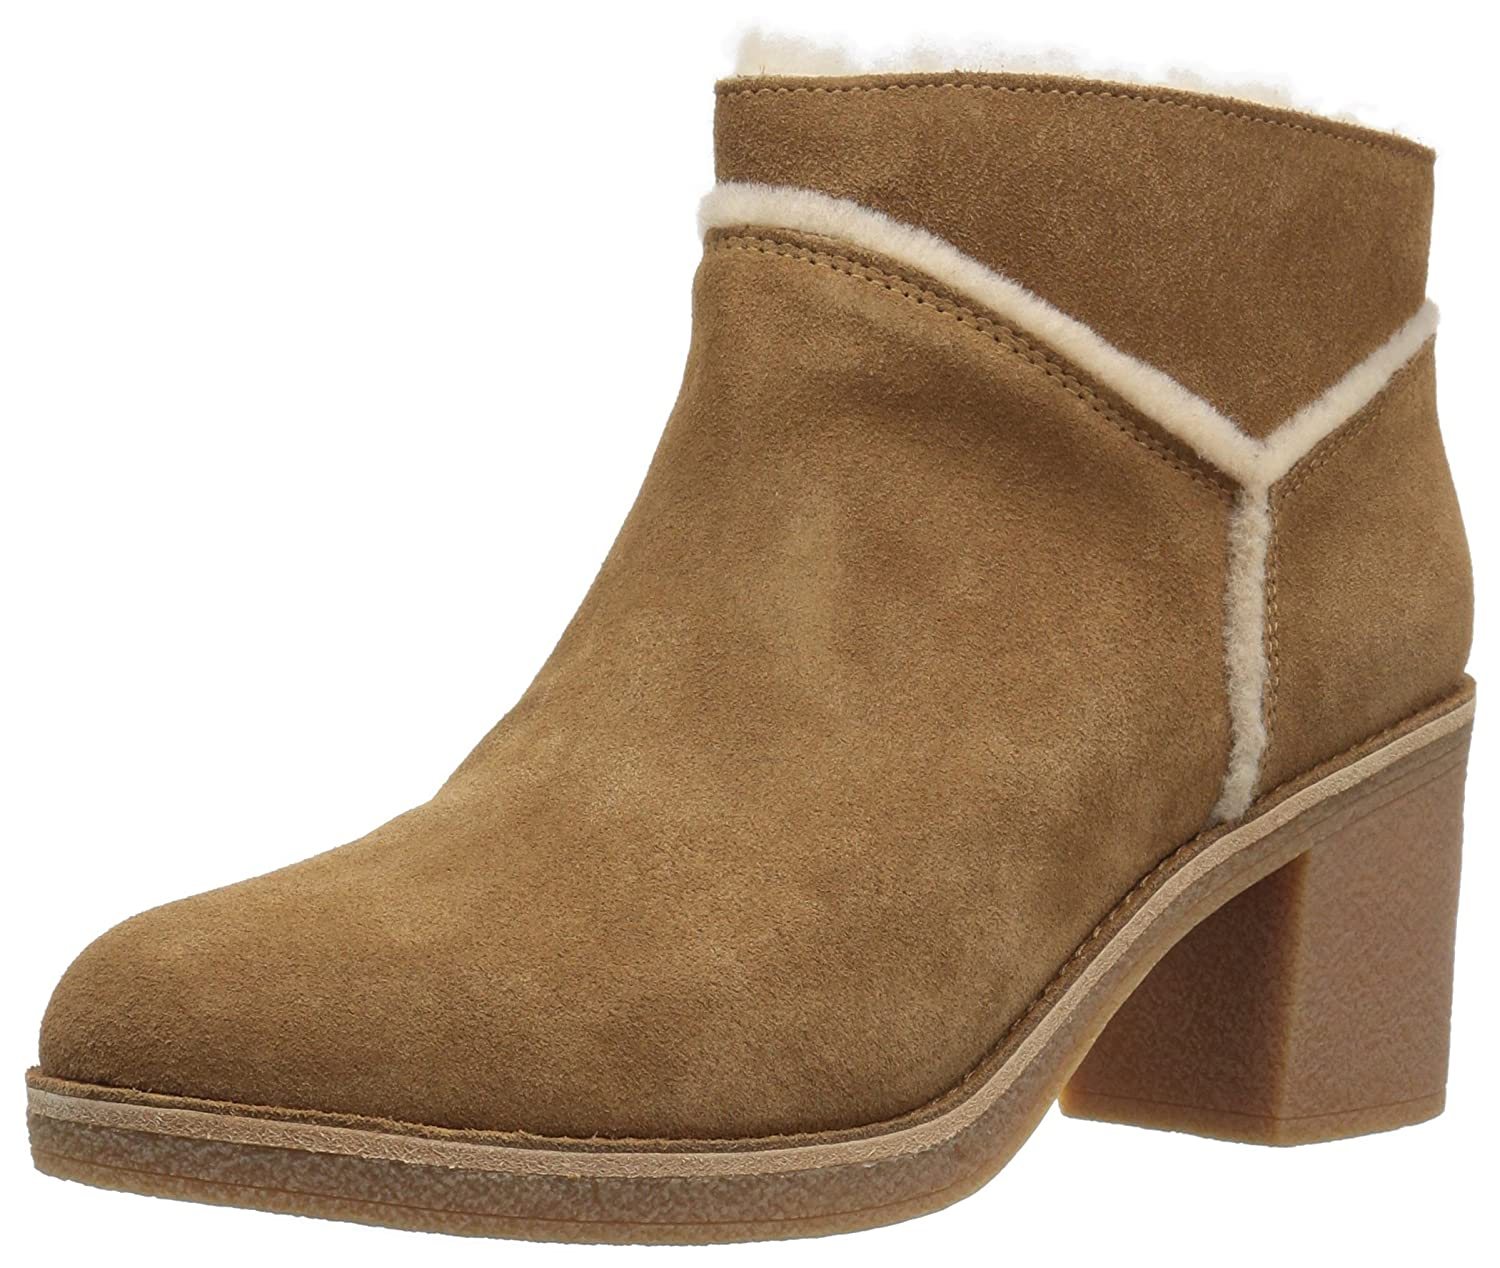 Ugg Women Heeled s Kasen Ankle Women s Suede Leather Heeled Ankle Boot In Chestnut Suede Noisette 1836181 - shopssong.space